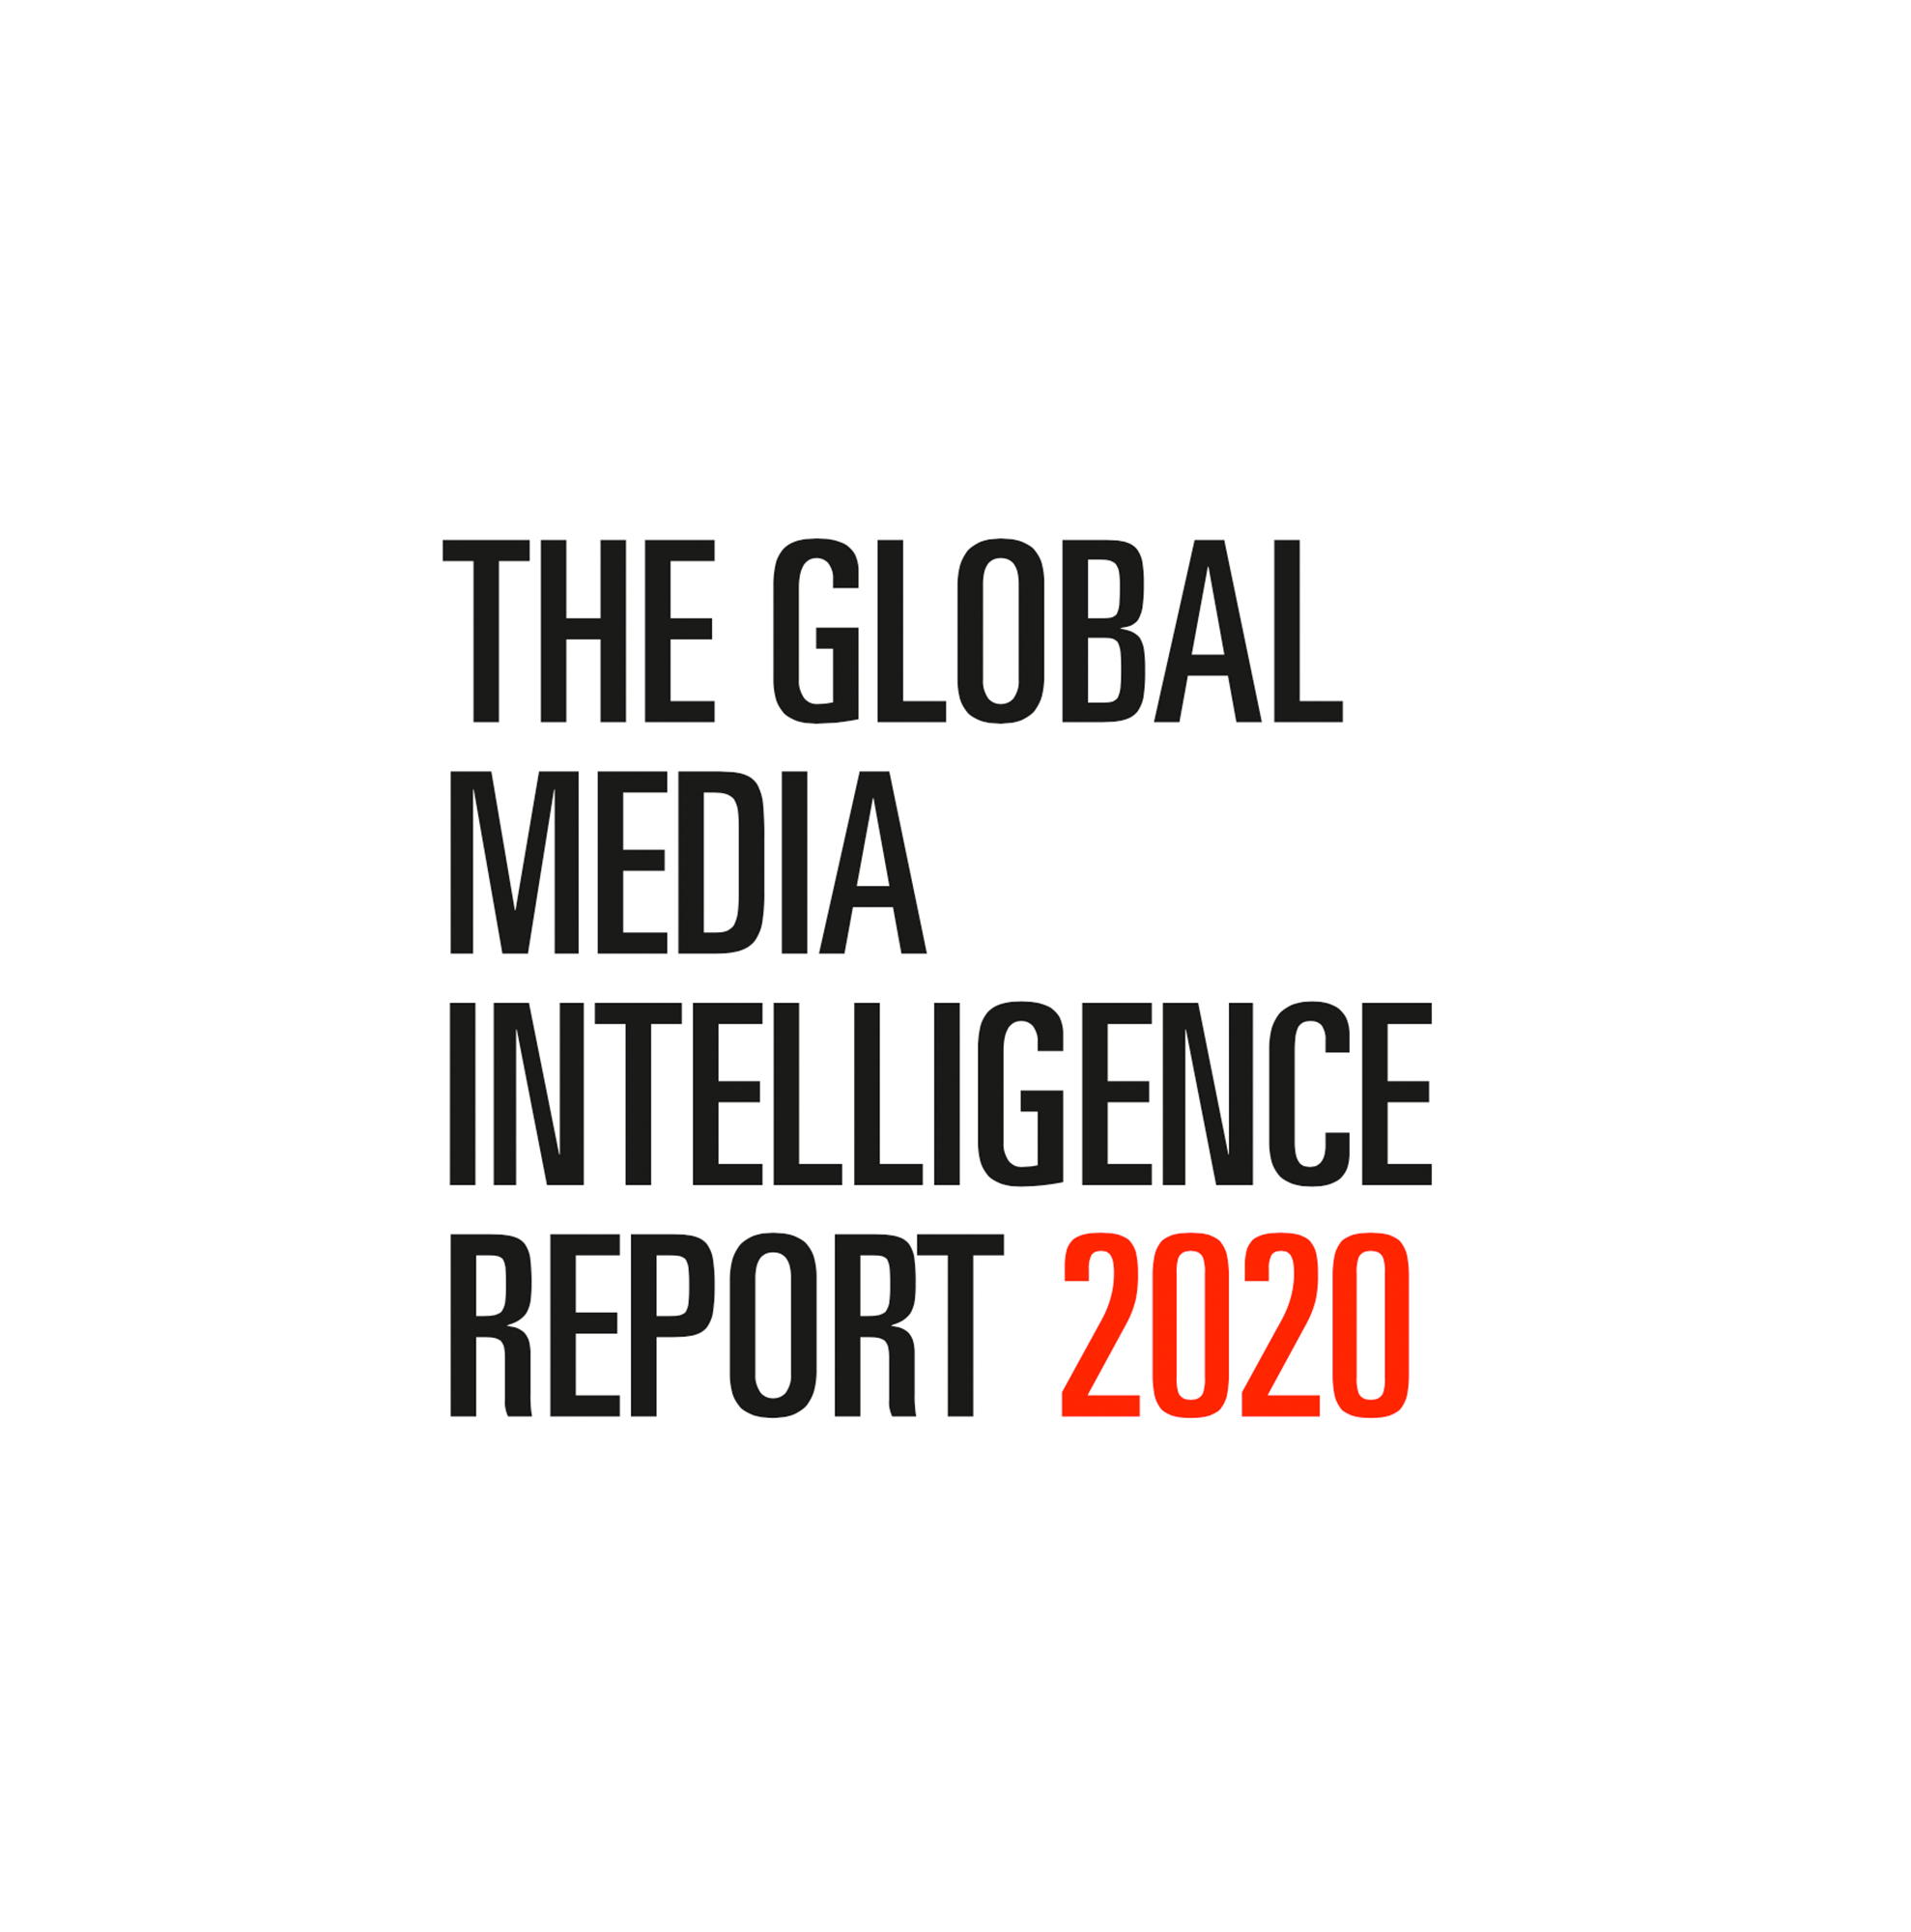 global-media-insight-report-provides-concise-picture-of-media-trends-in-uae-ksa